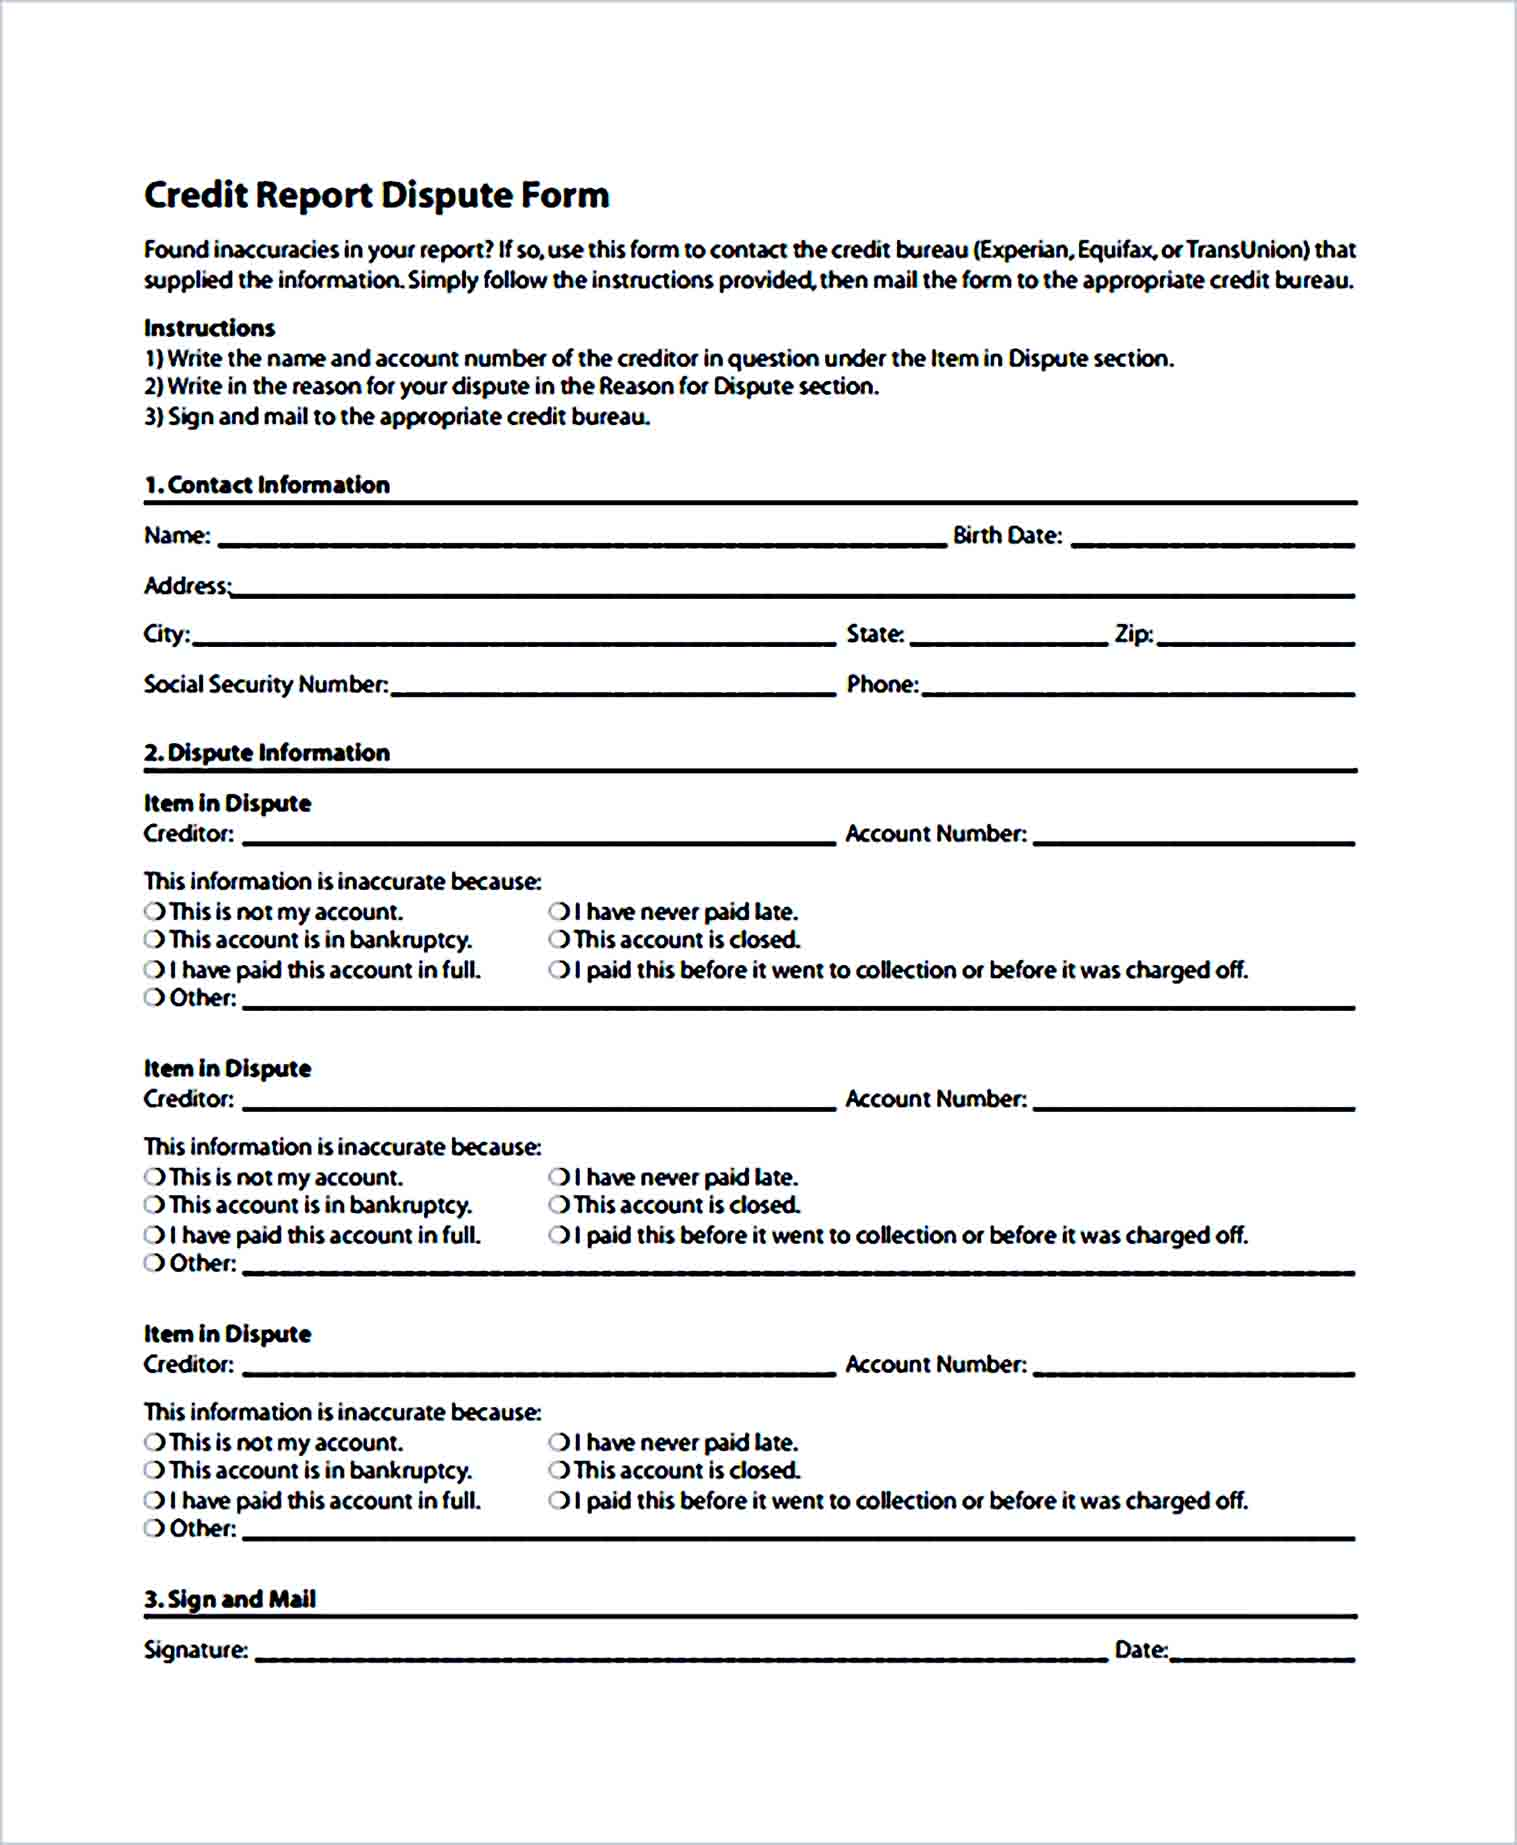 Sample Credit Report Dispute Form